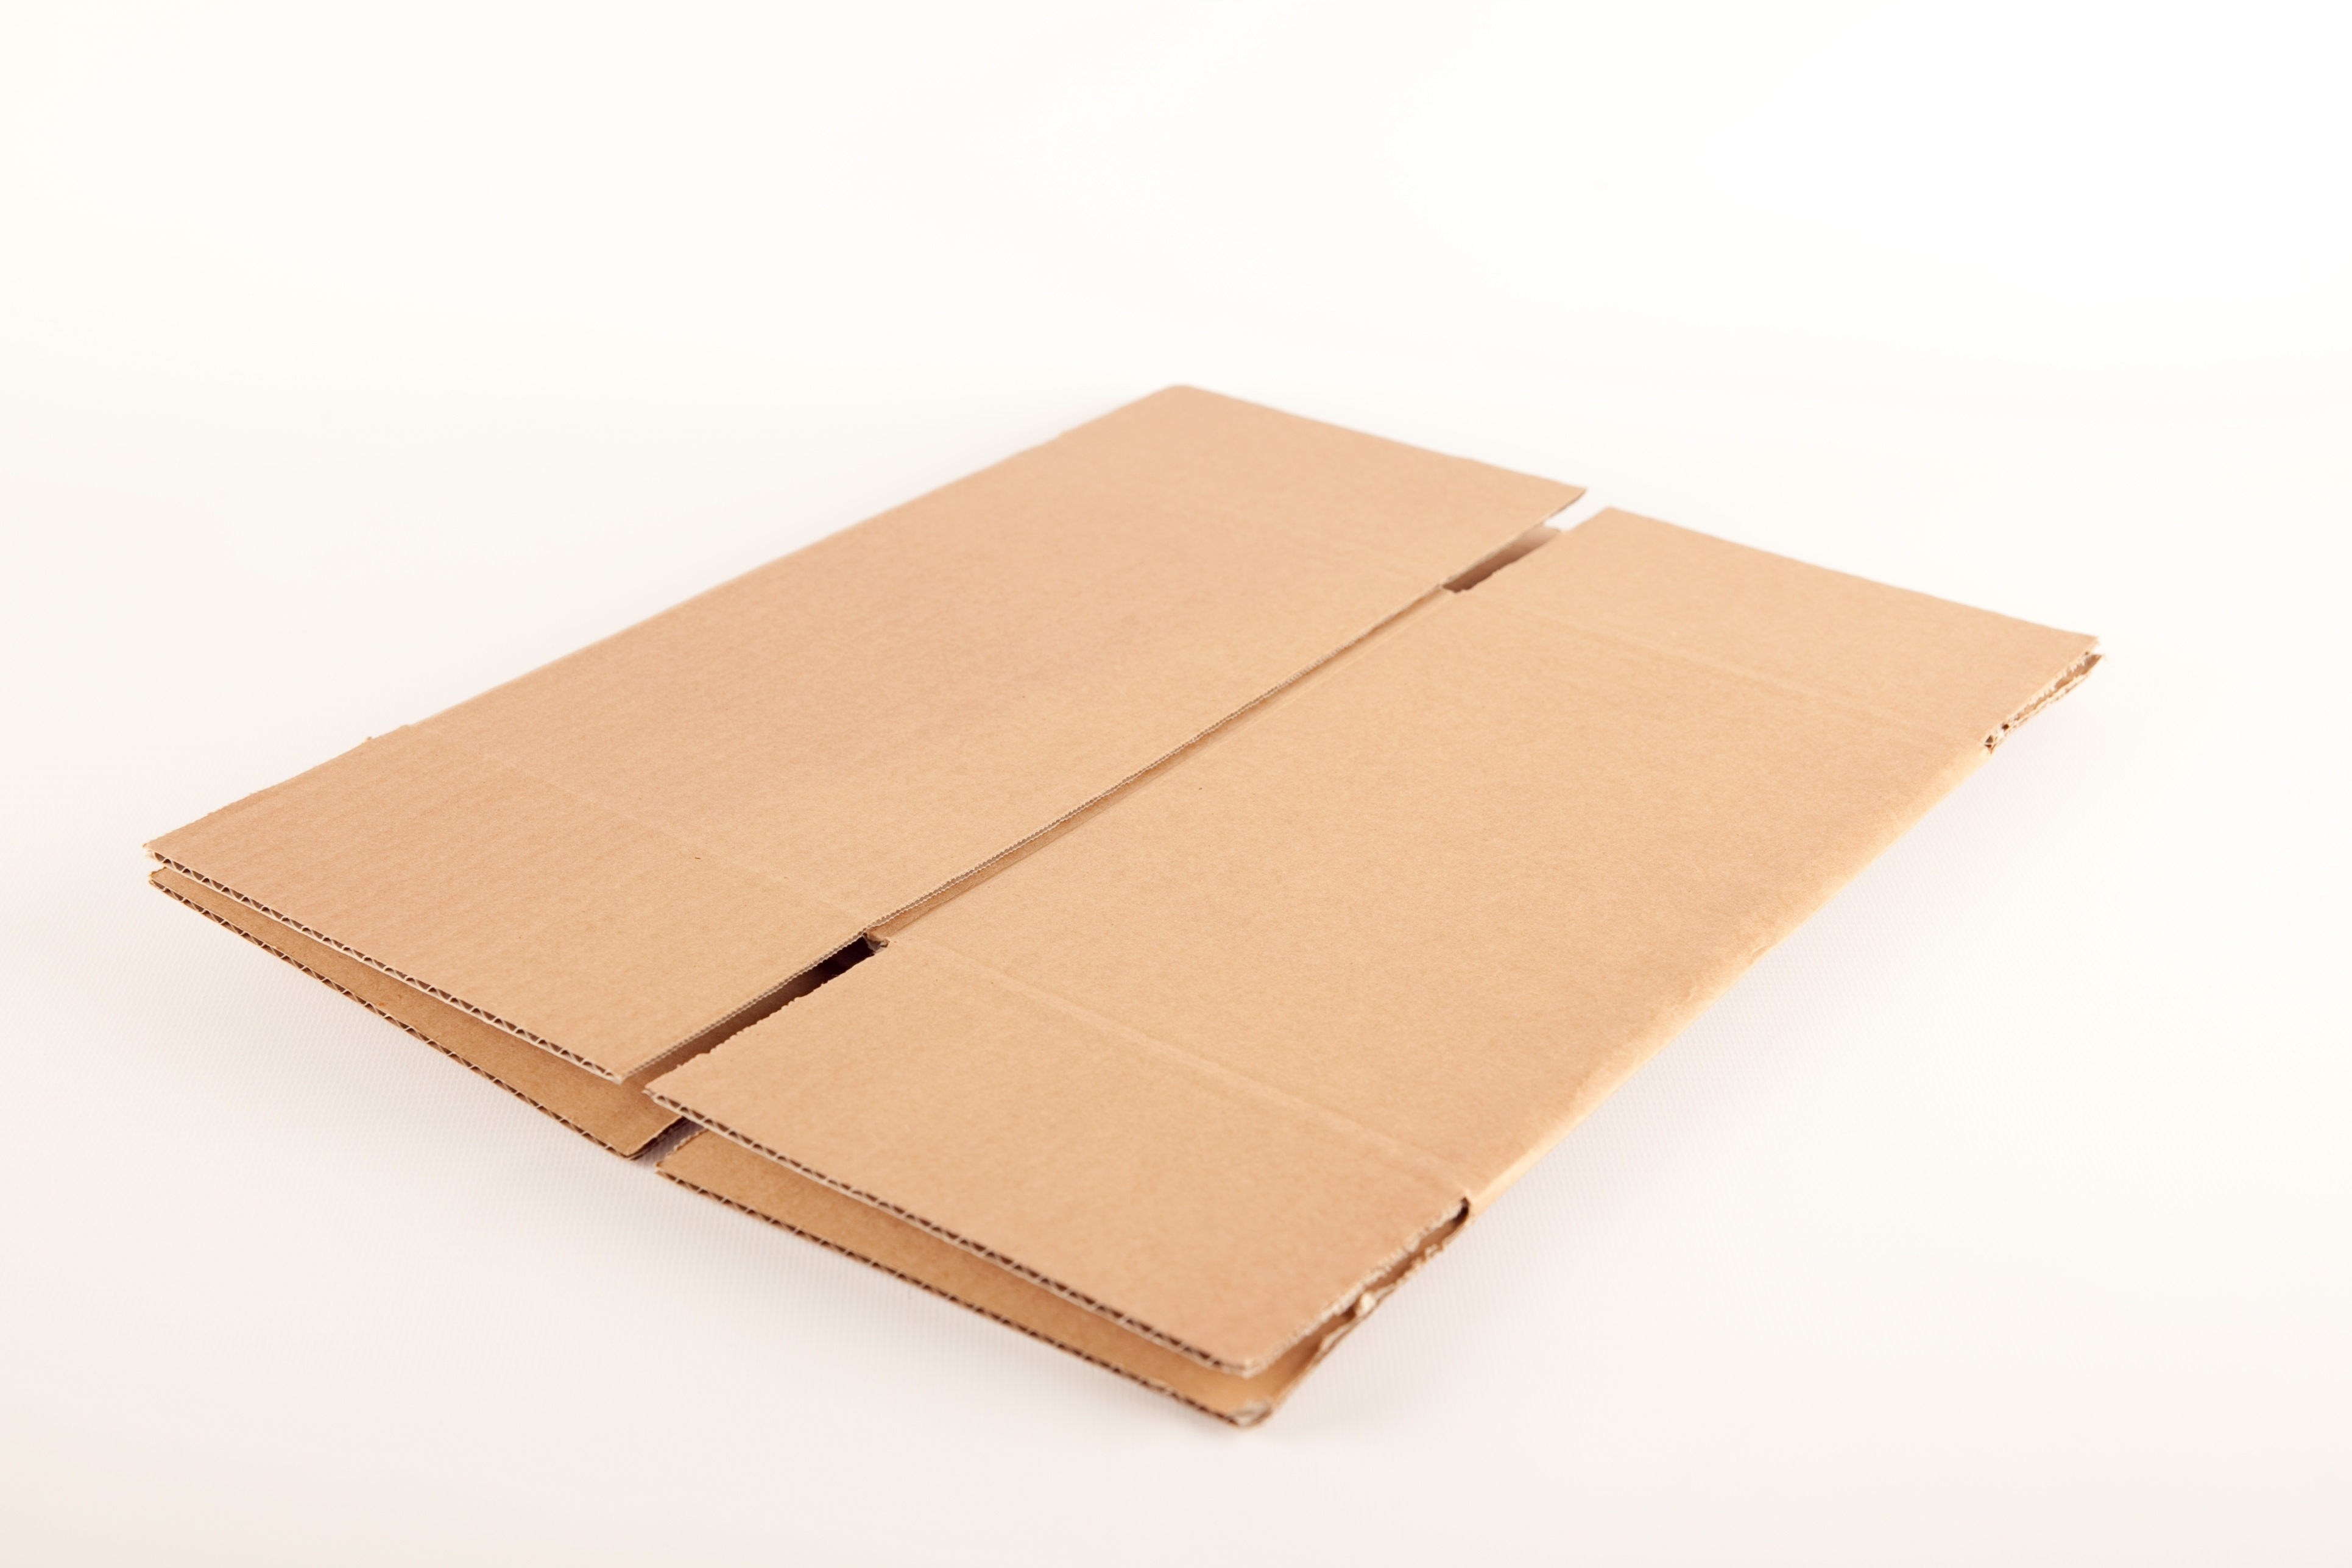 254 x 254 x 254mm Single Wall Cardboard Boxes - 3